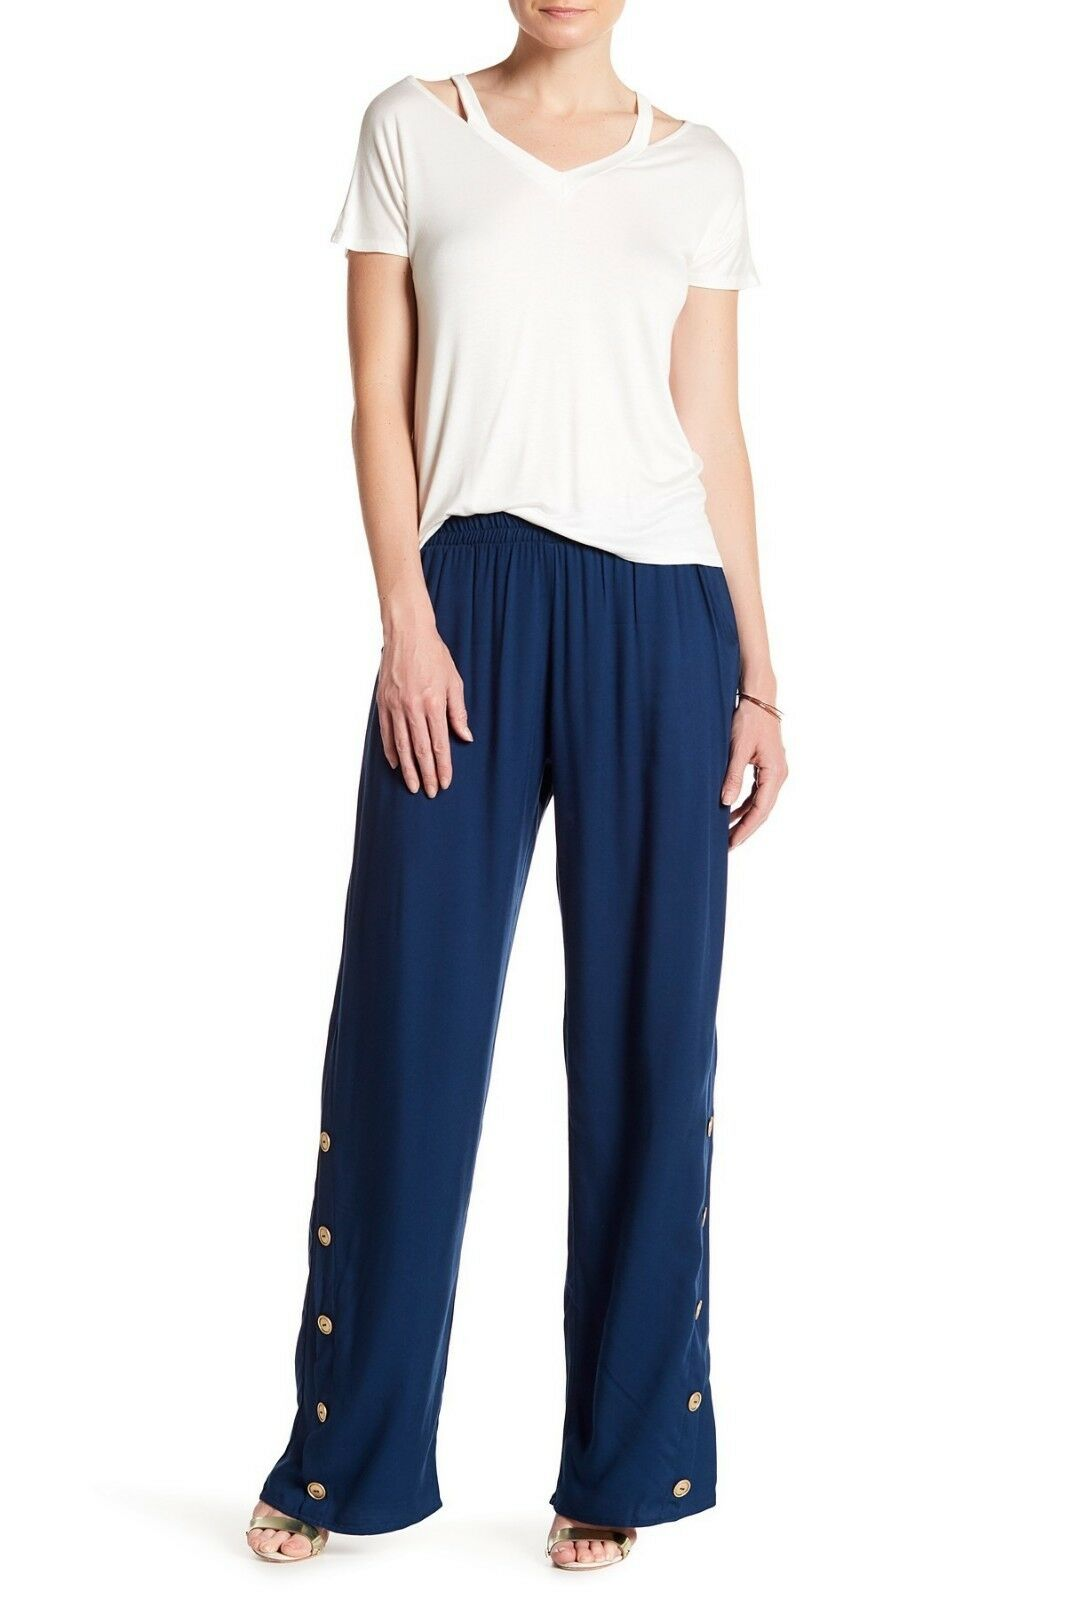 Pull On Twill Wide Leg Pant with Button Detail bluee Small NWT Leibl 38